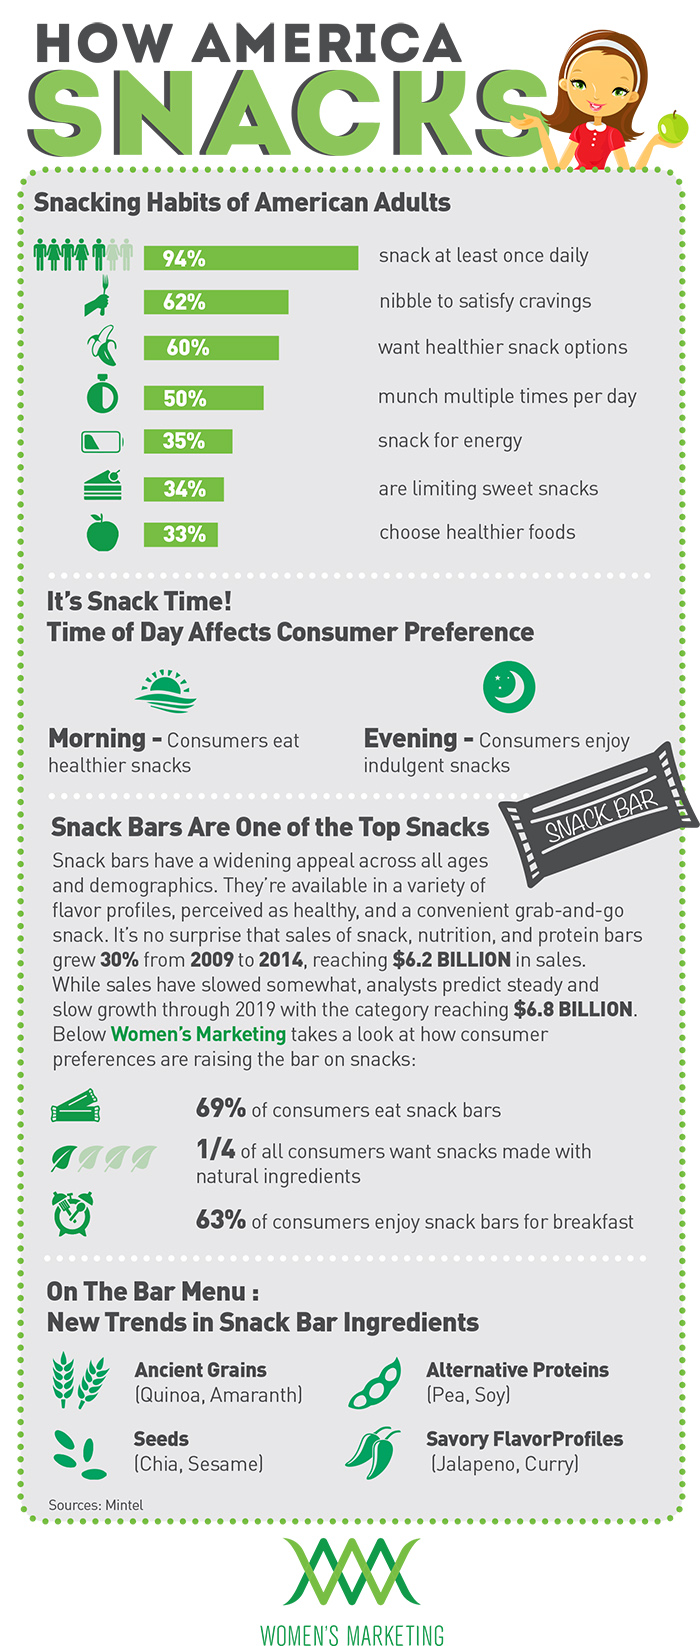 snacking-habits-of-americans-infographic